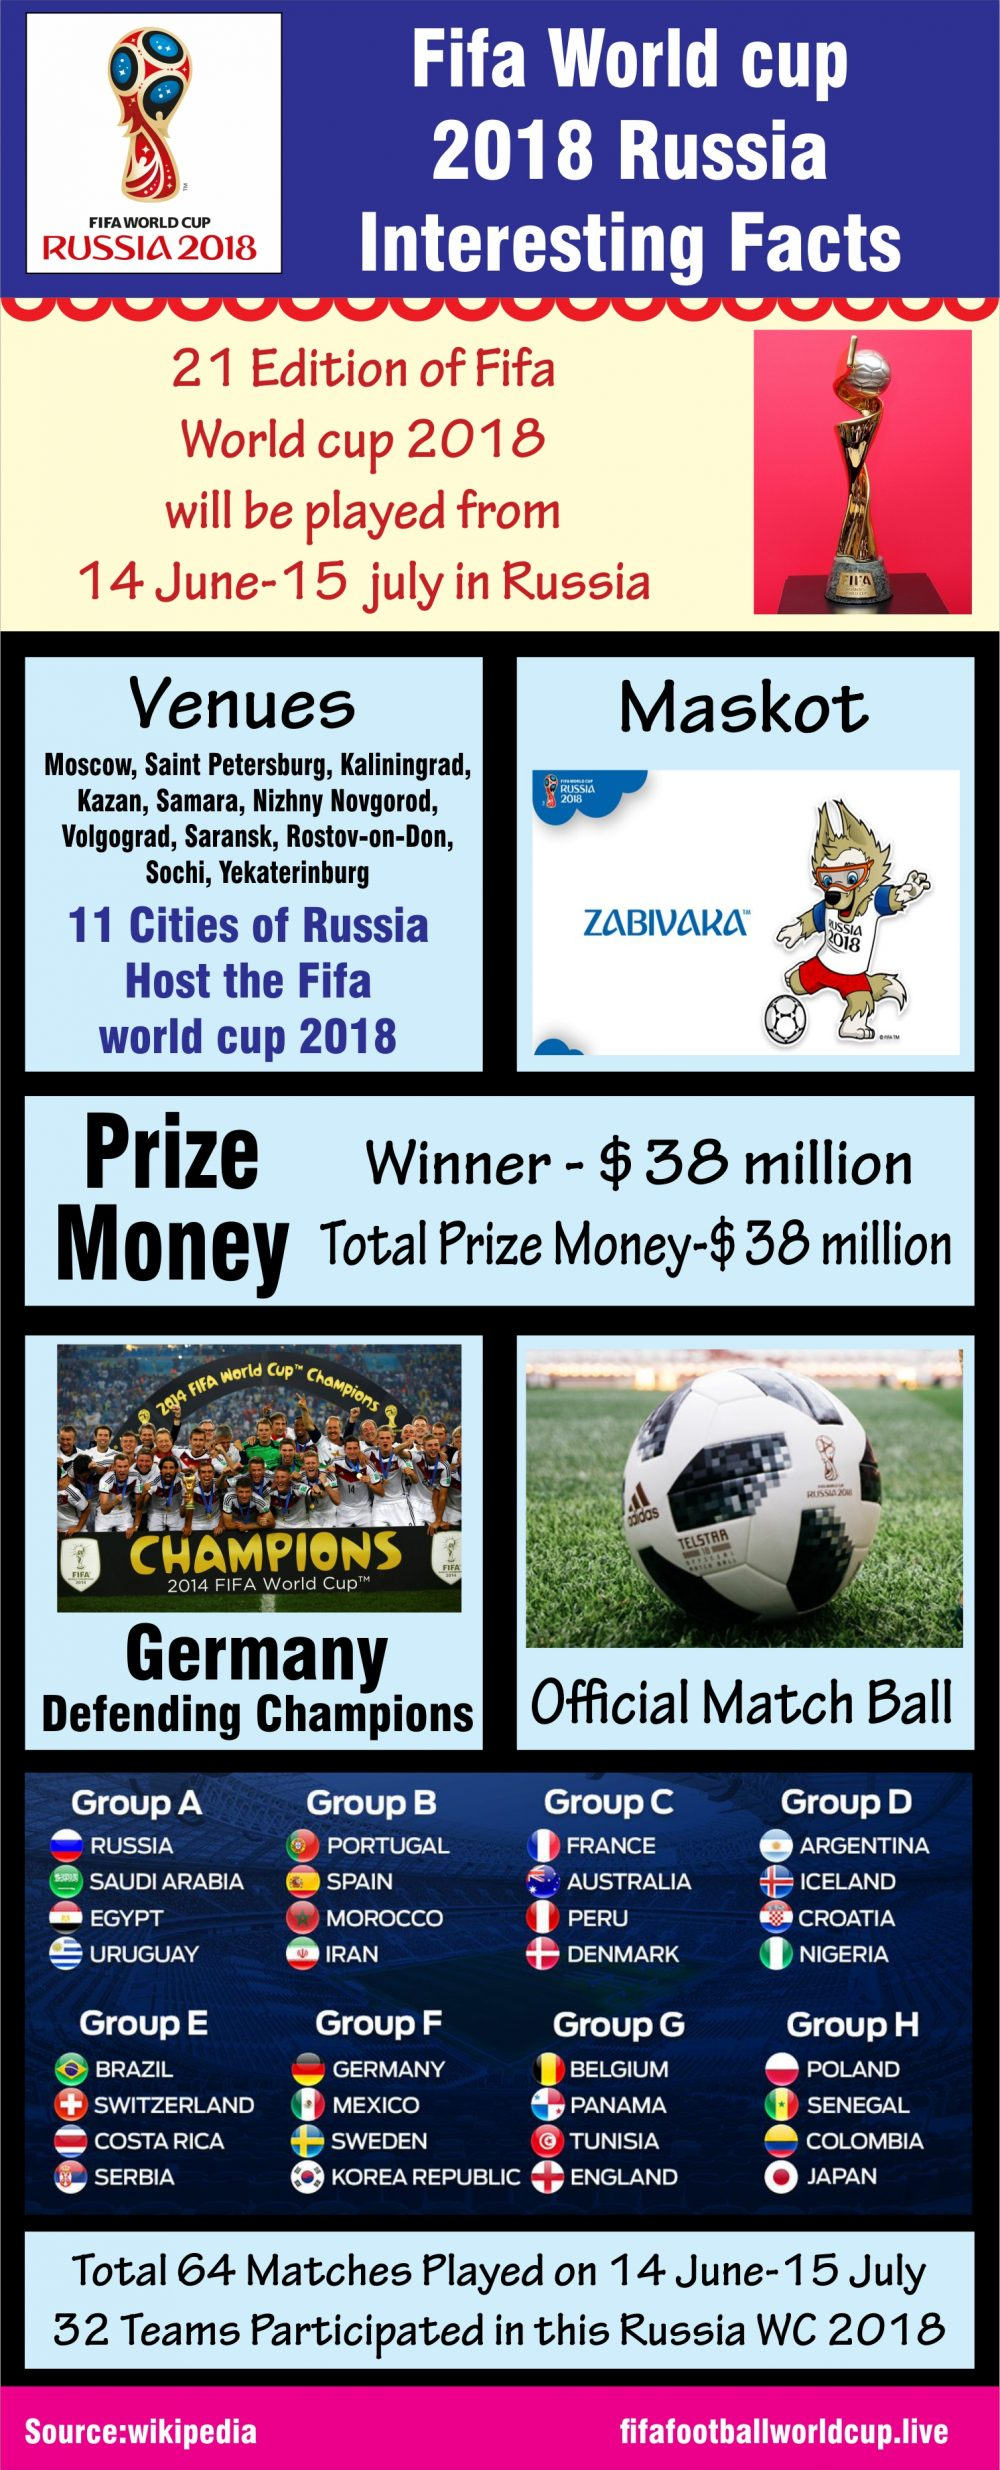 Fifa world cup 2018 interesting facts picture